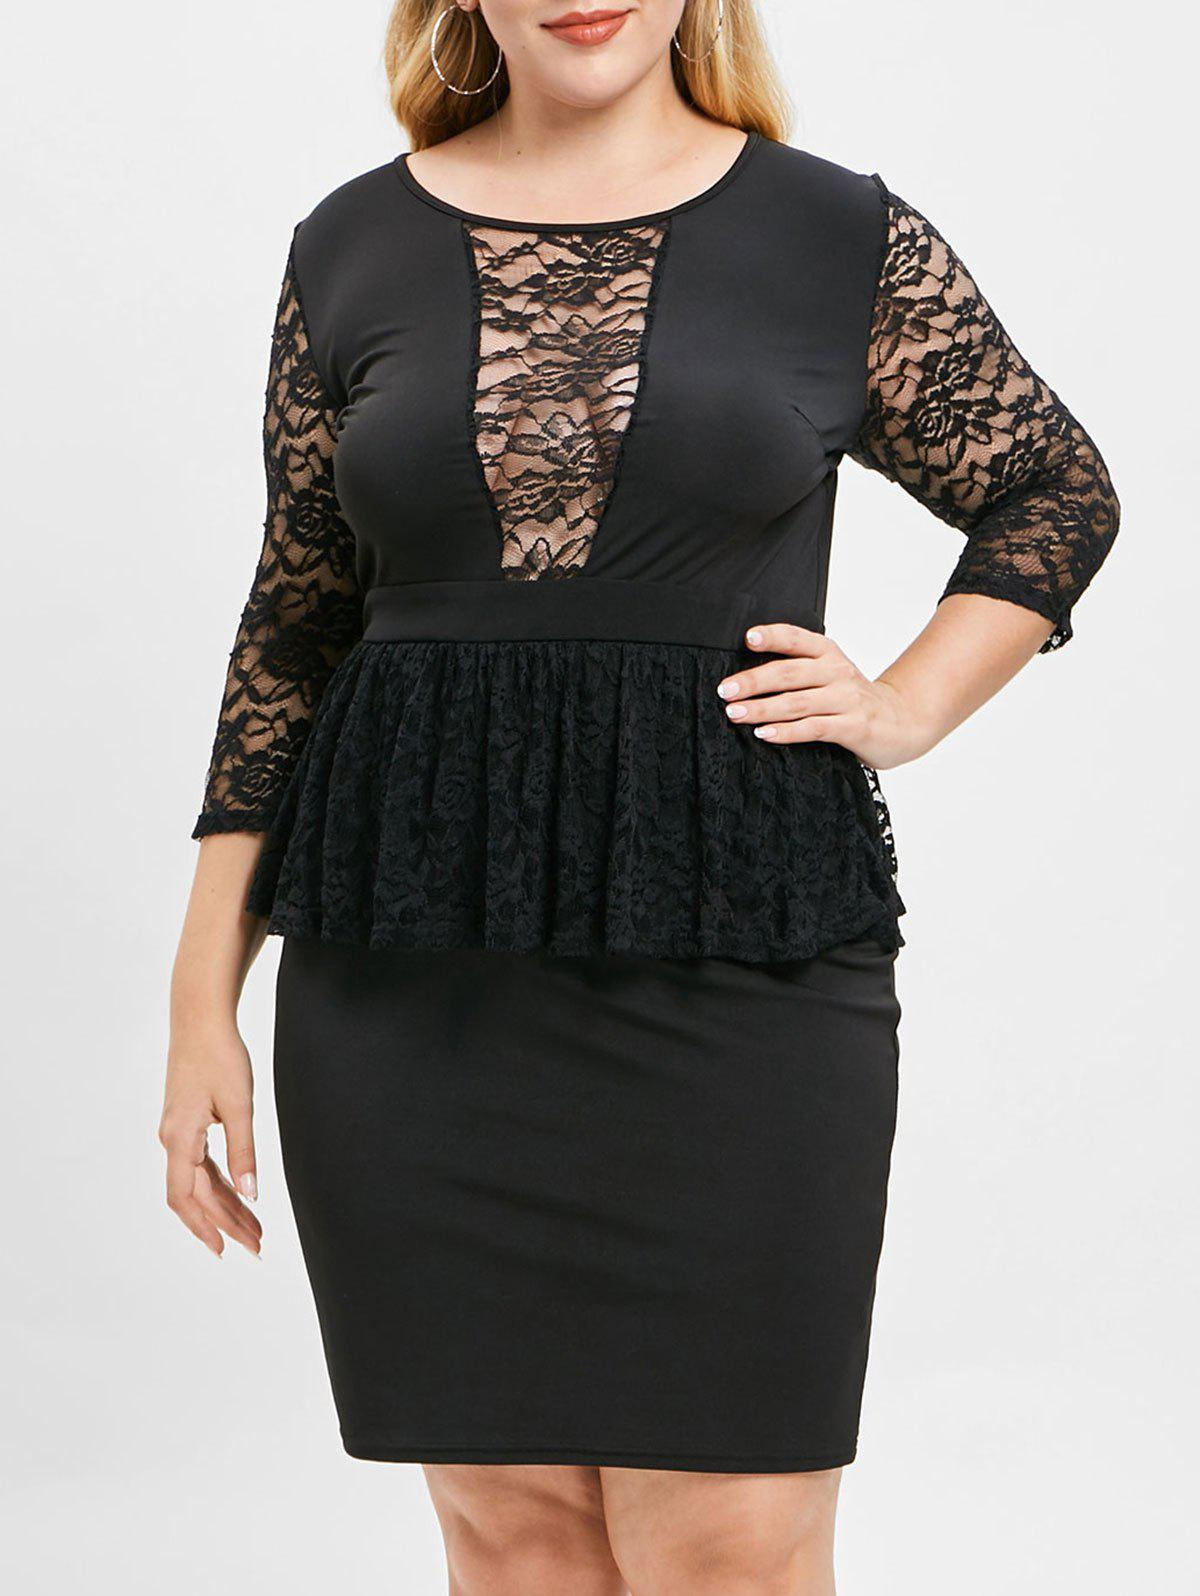 5c6b790fda7 45% OFF  Plus Size Lace Spliced Knee Length Peplum Dress